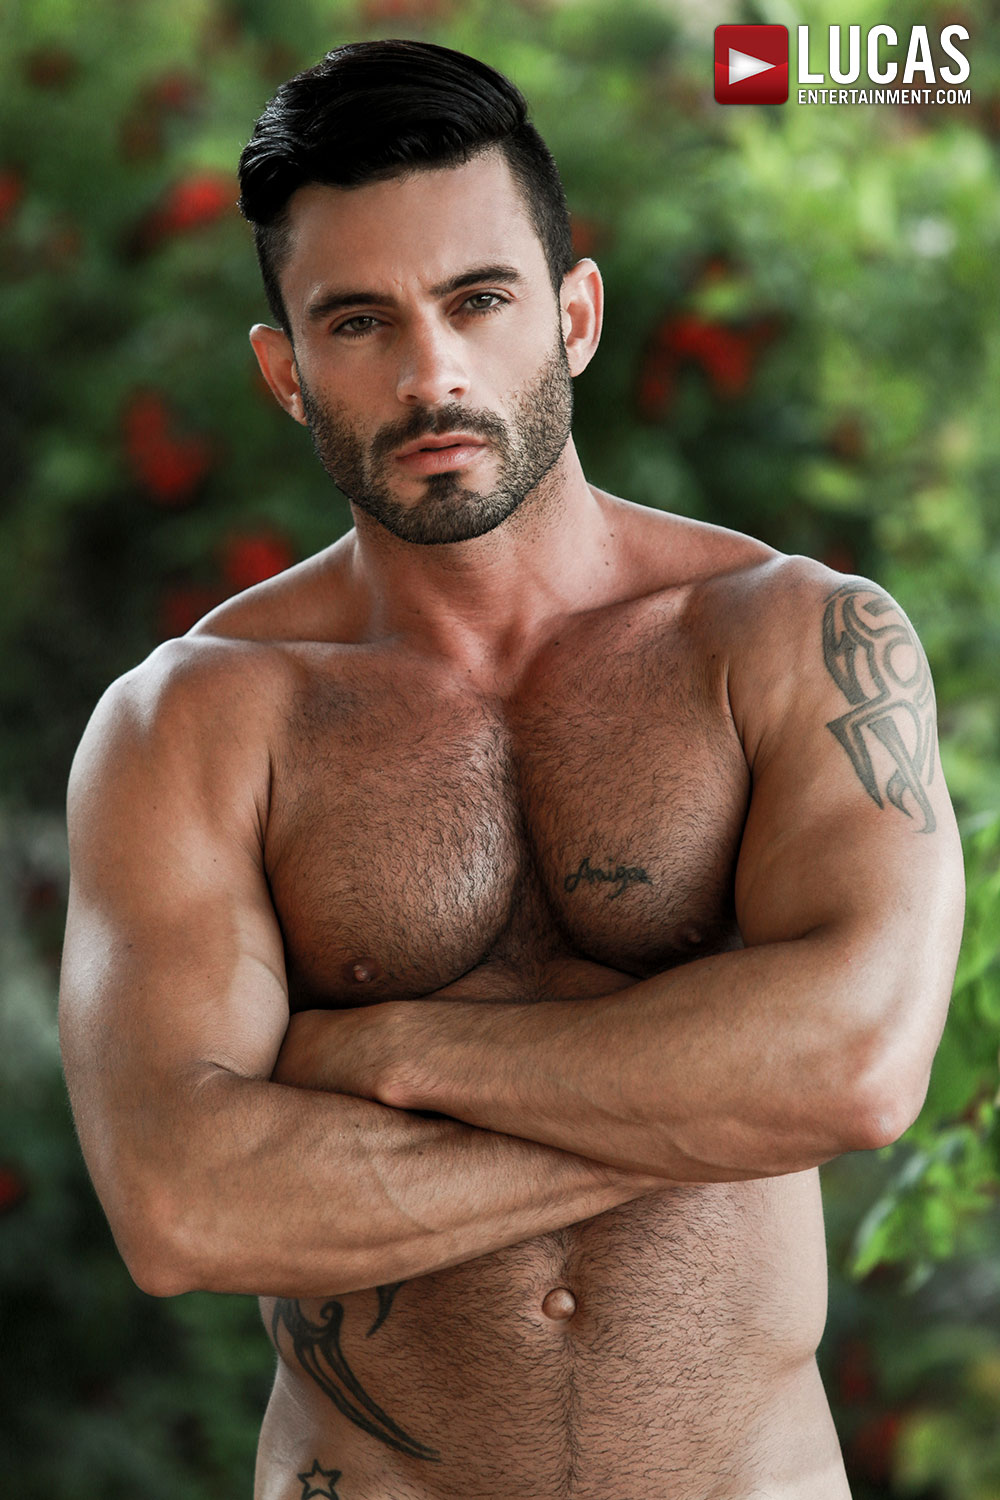 Andy Star And His Abs Star In Today's Scene